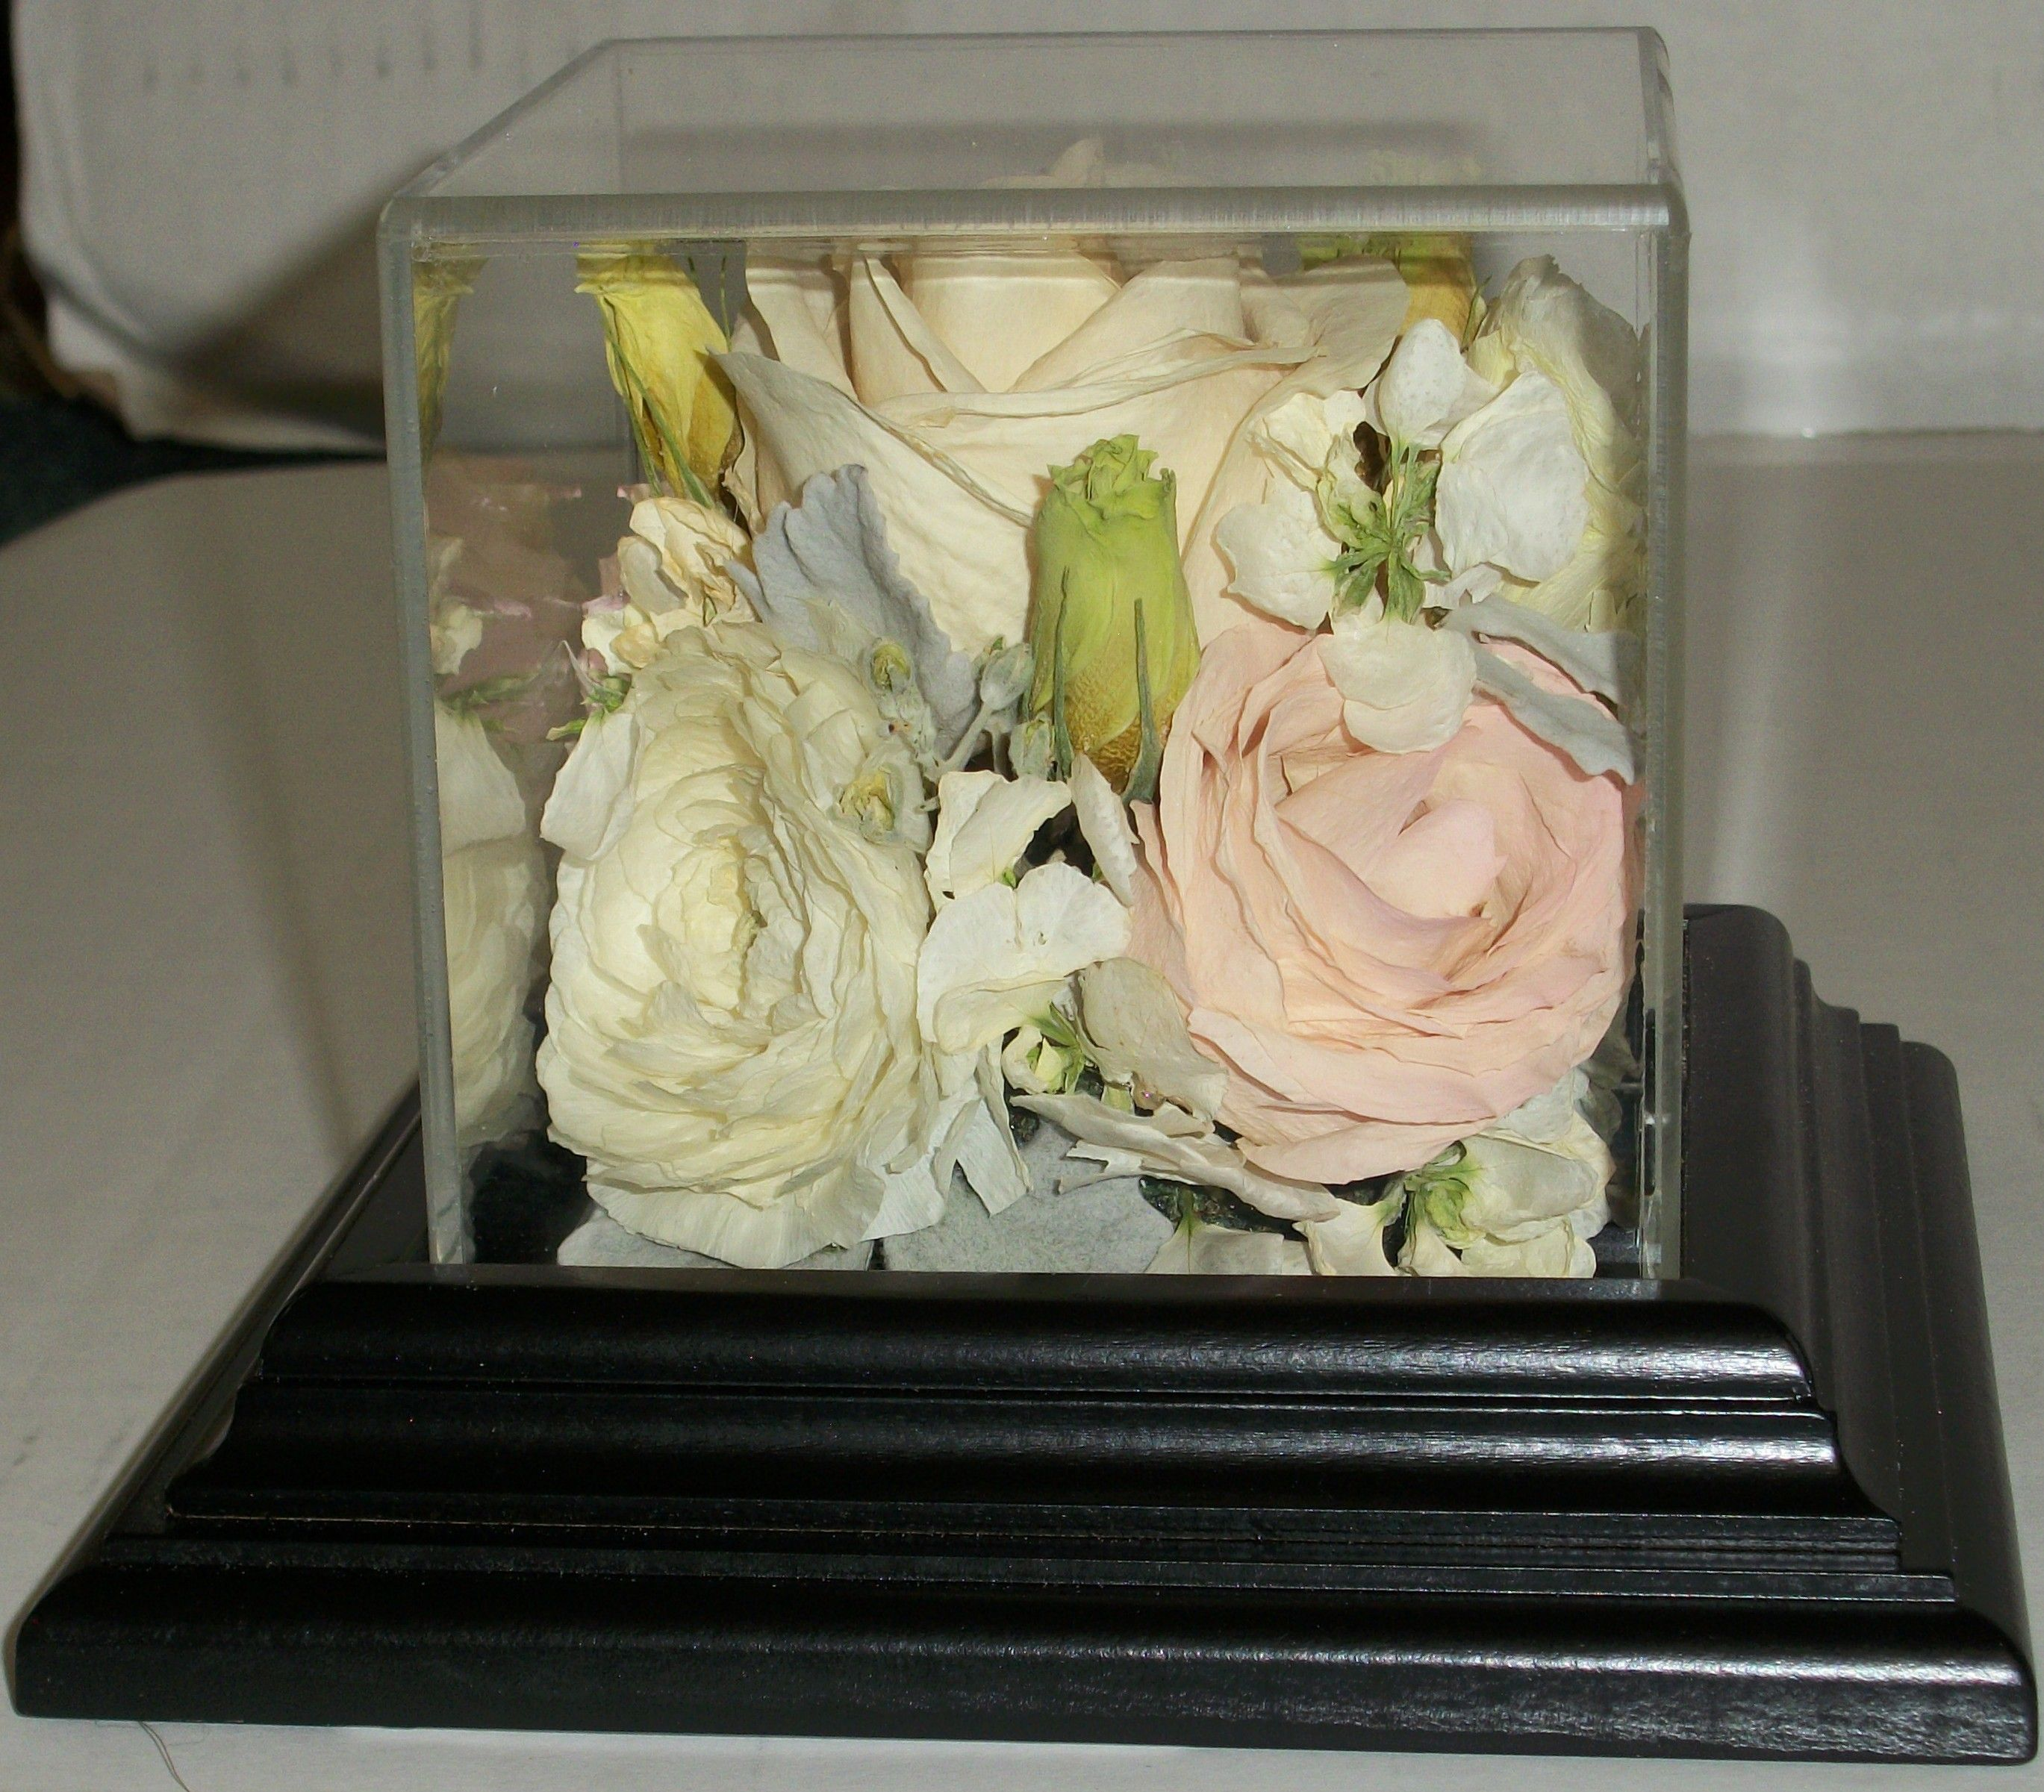 Do you have wedding flowers that you would like to